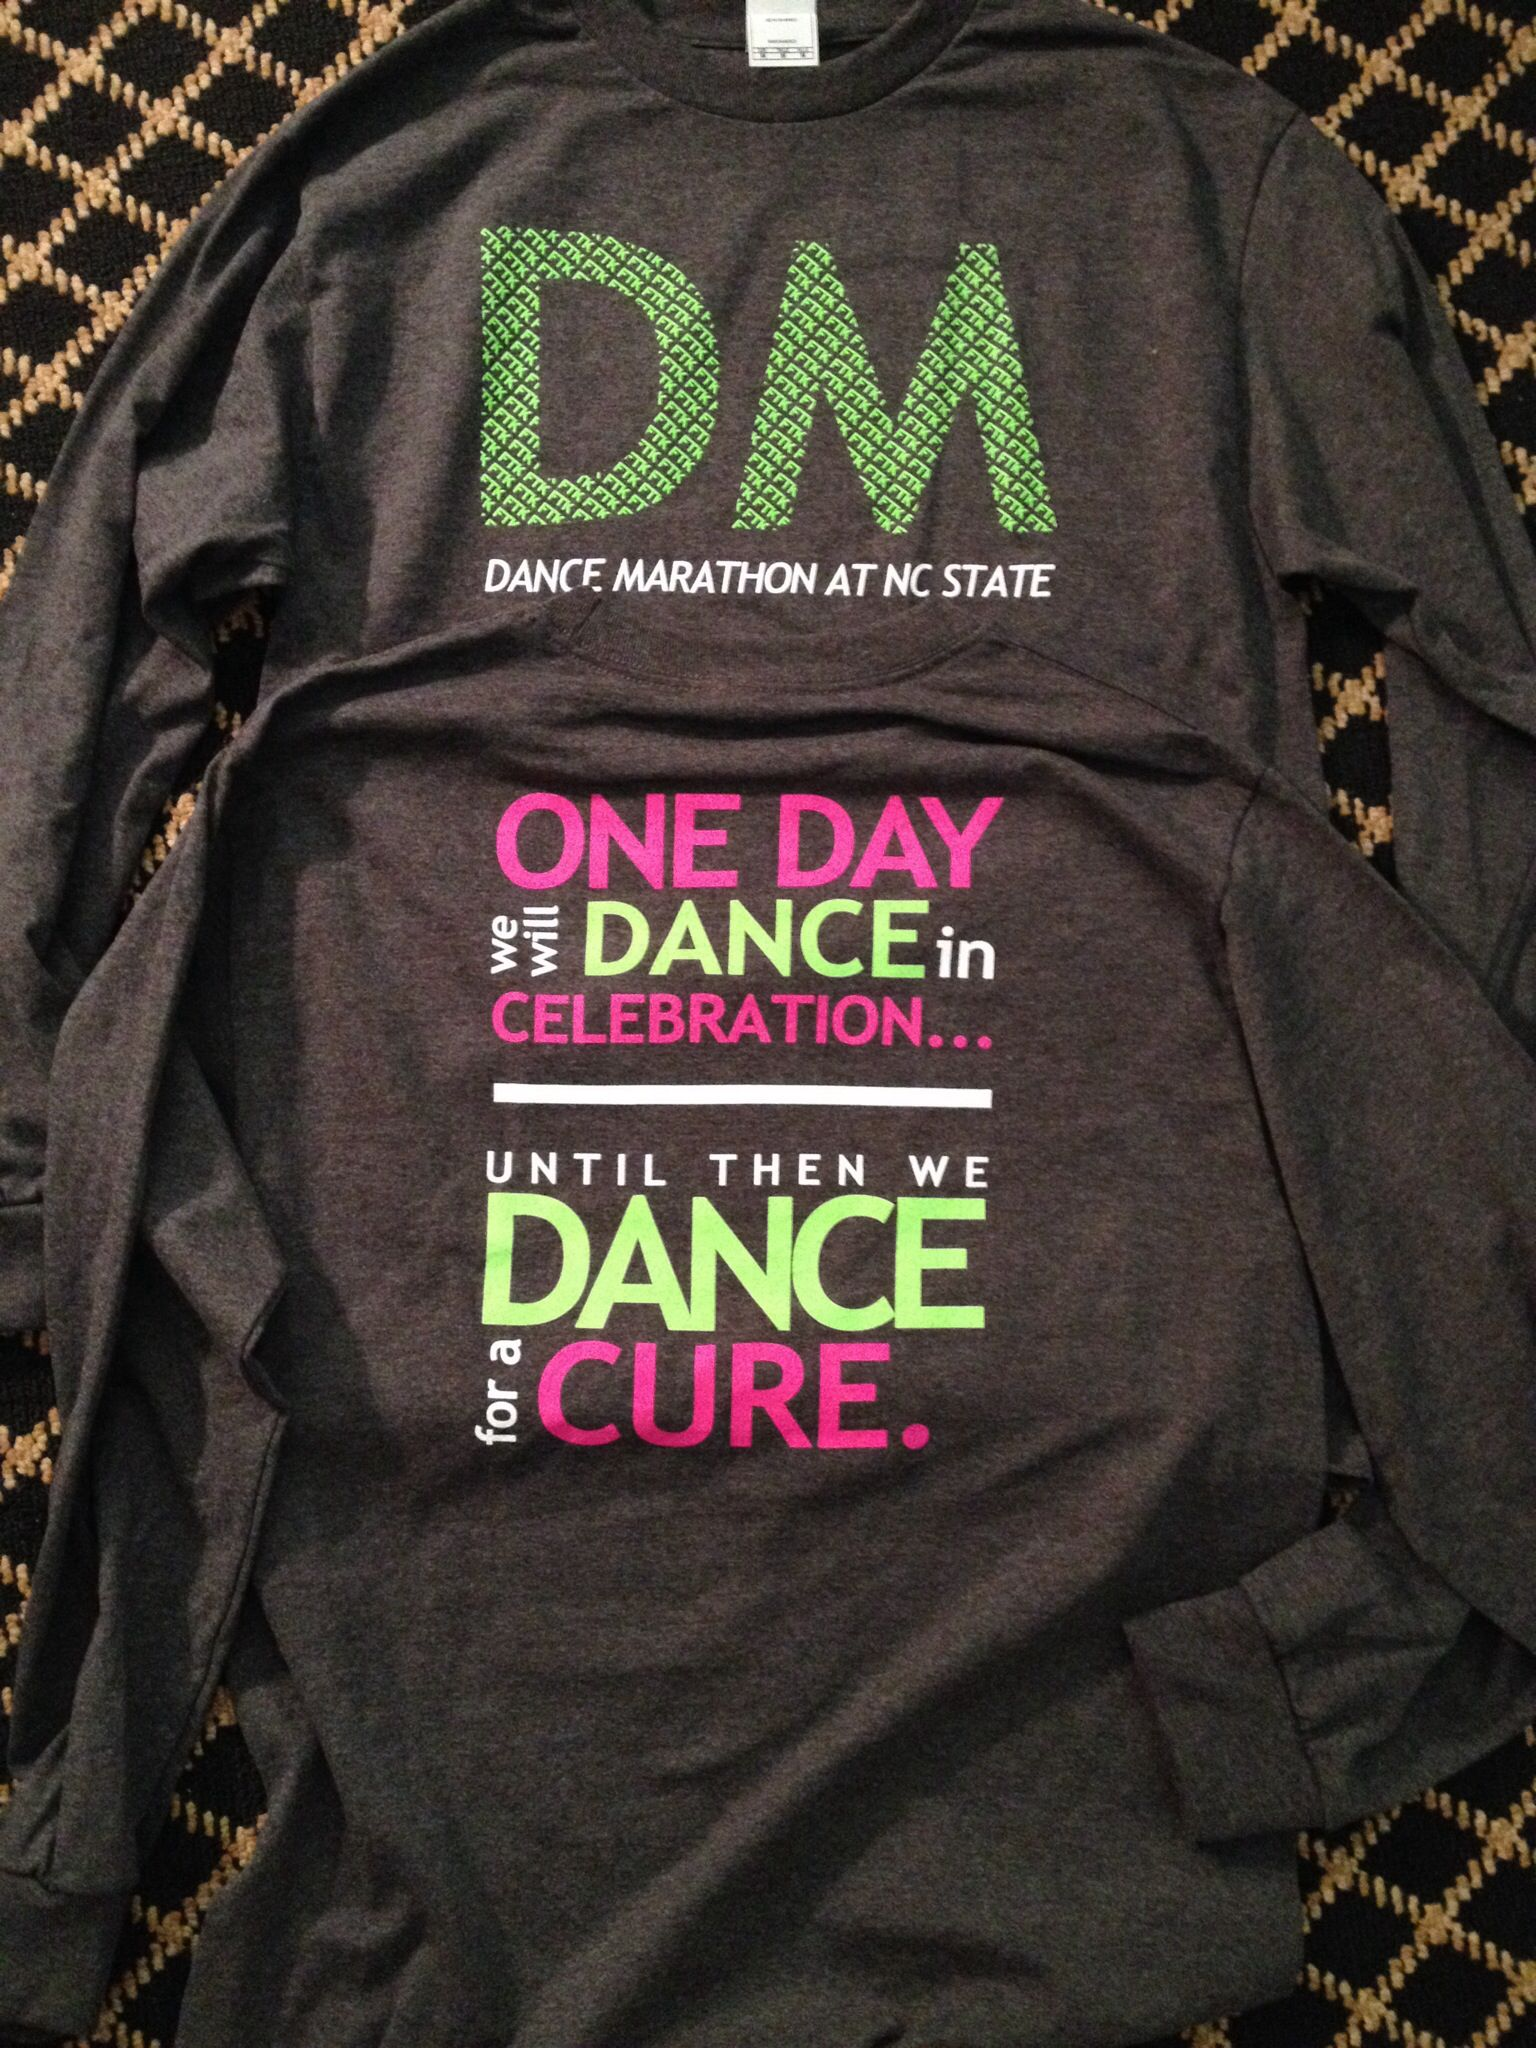 7b9c676a8 Dance Marathon at NC State tshirts. Be sure to check out  www.bsudancemarat... for information about BSUDM #dancemarathon #ftk